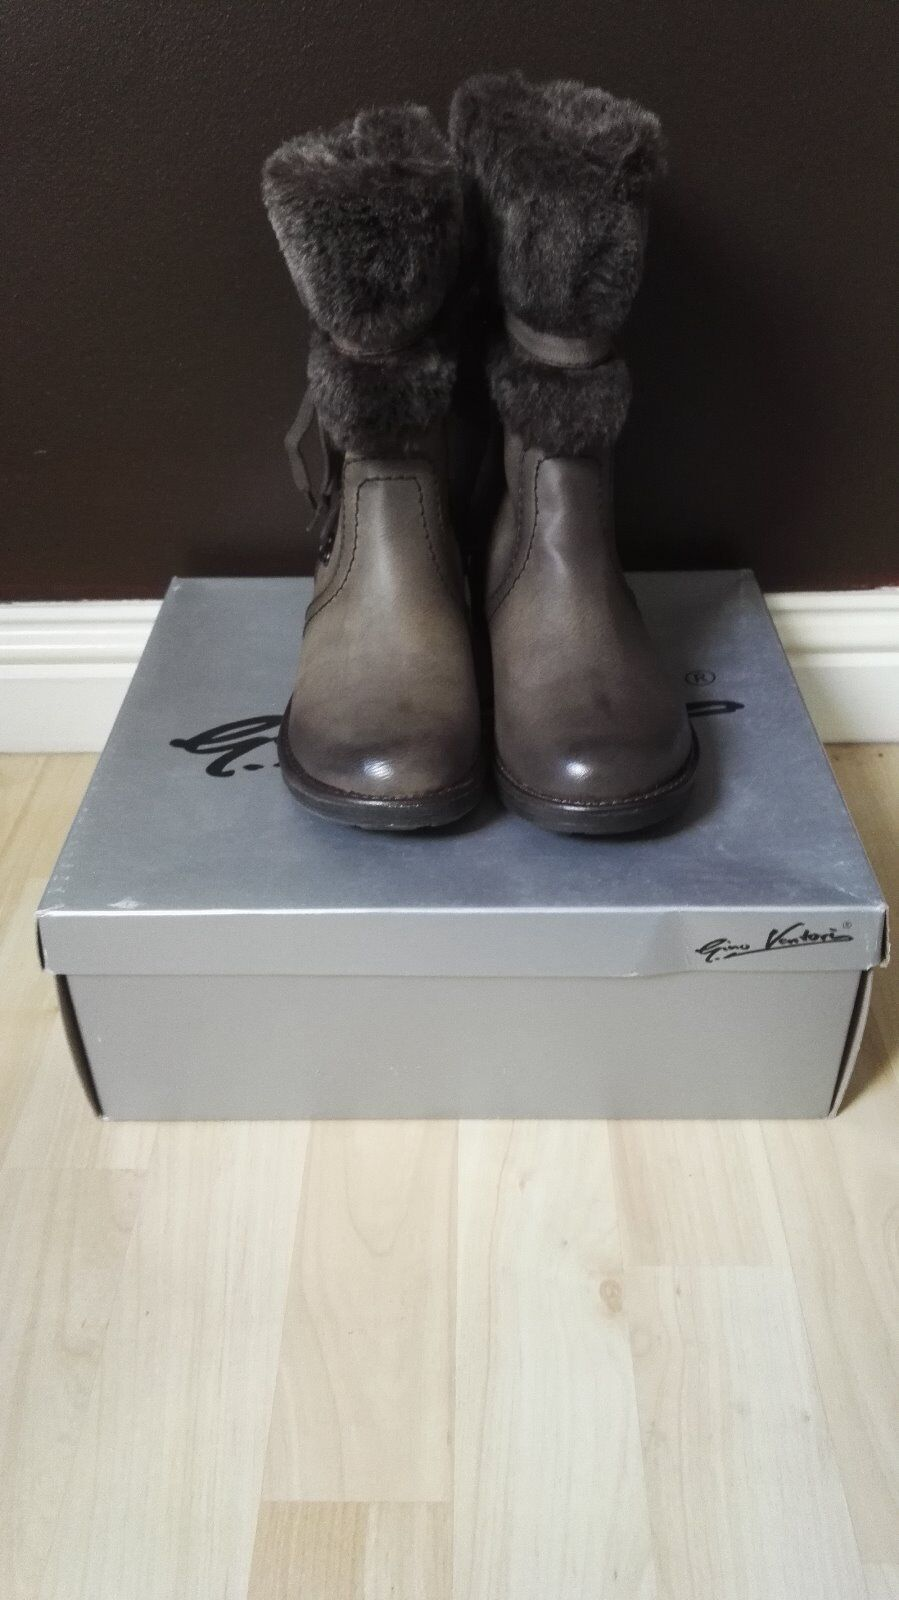 Ladies BNWB Gino Ventori Brown Boots size 3 code 26416272769